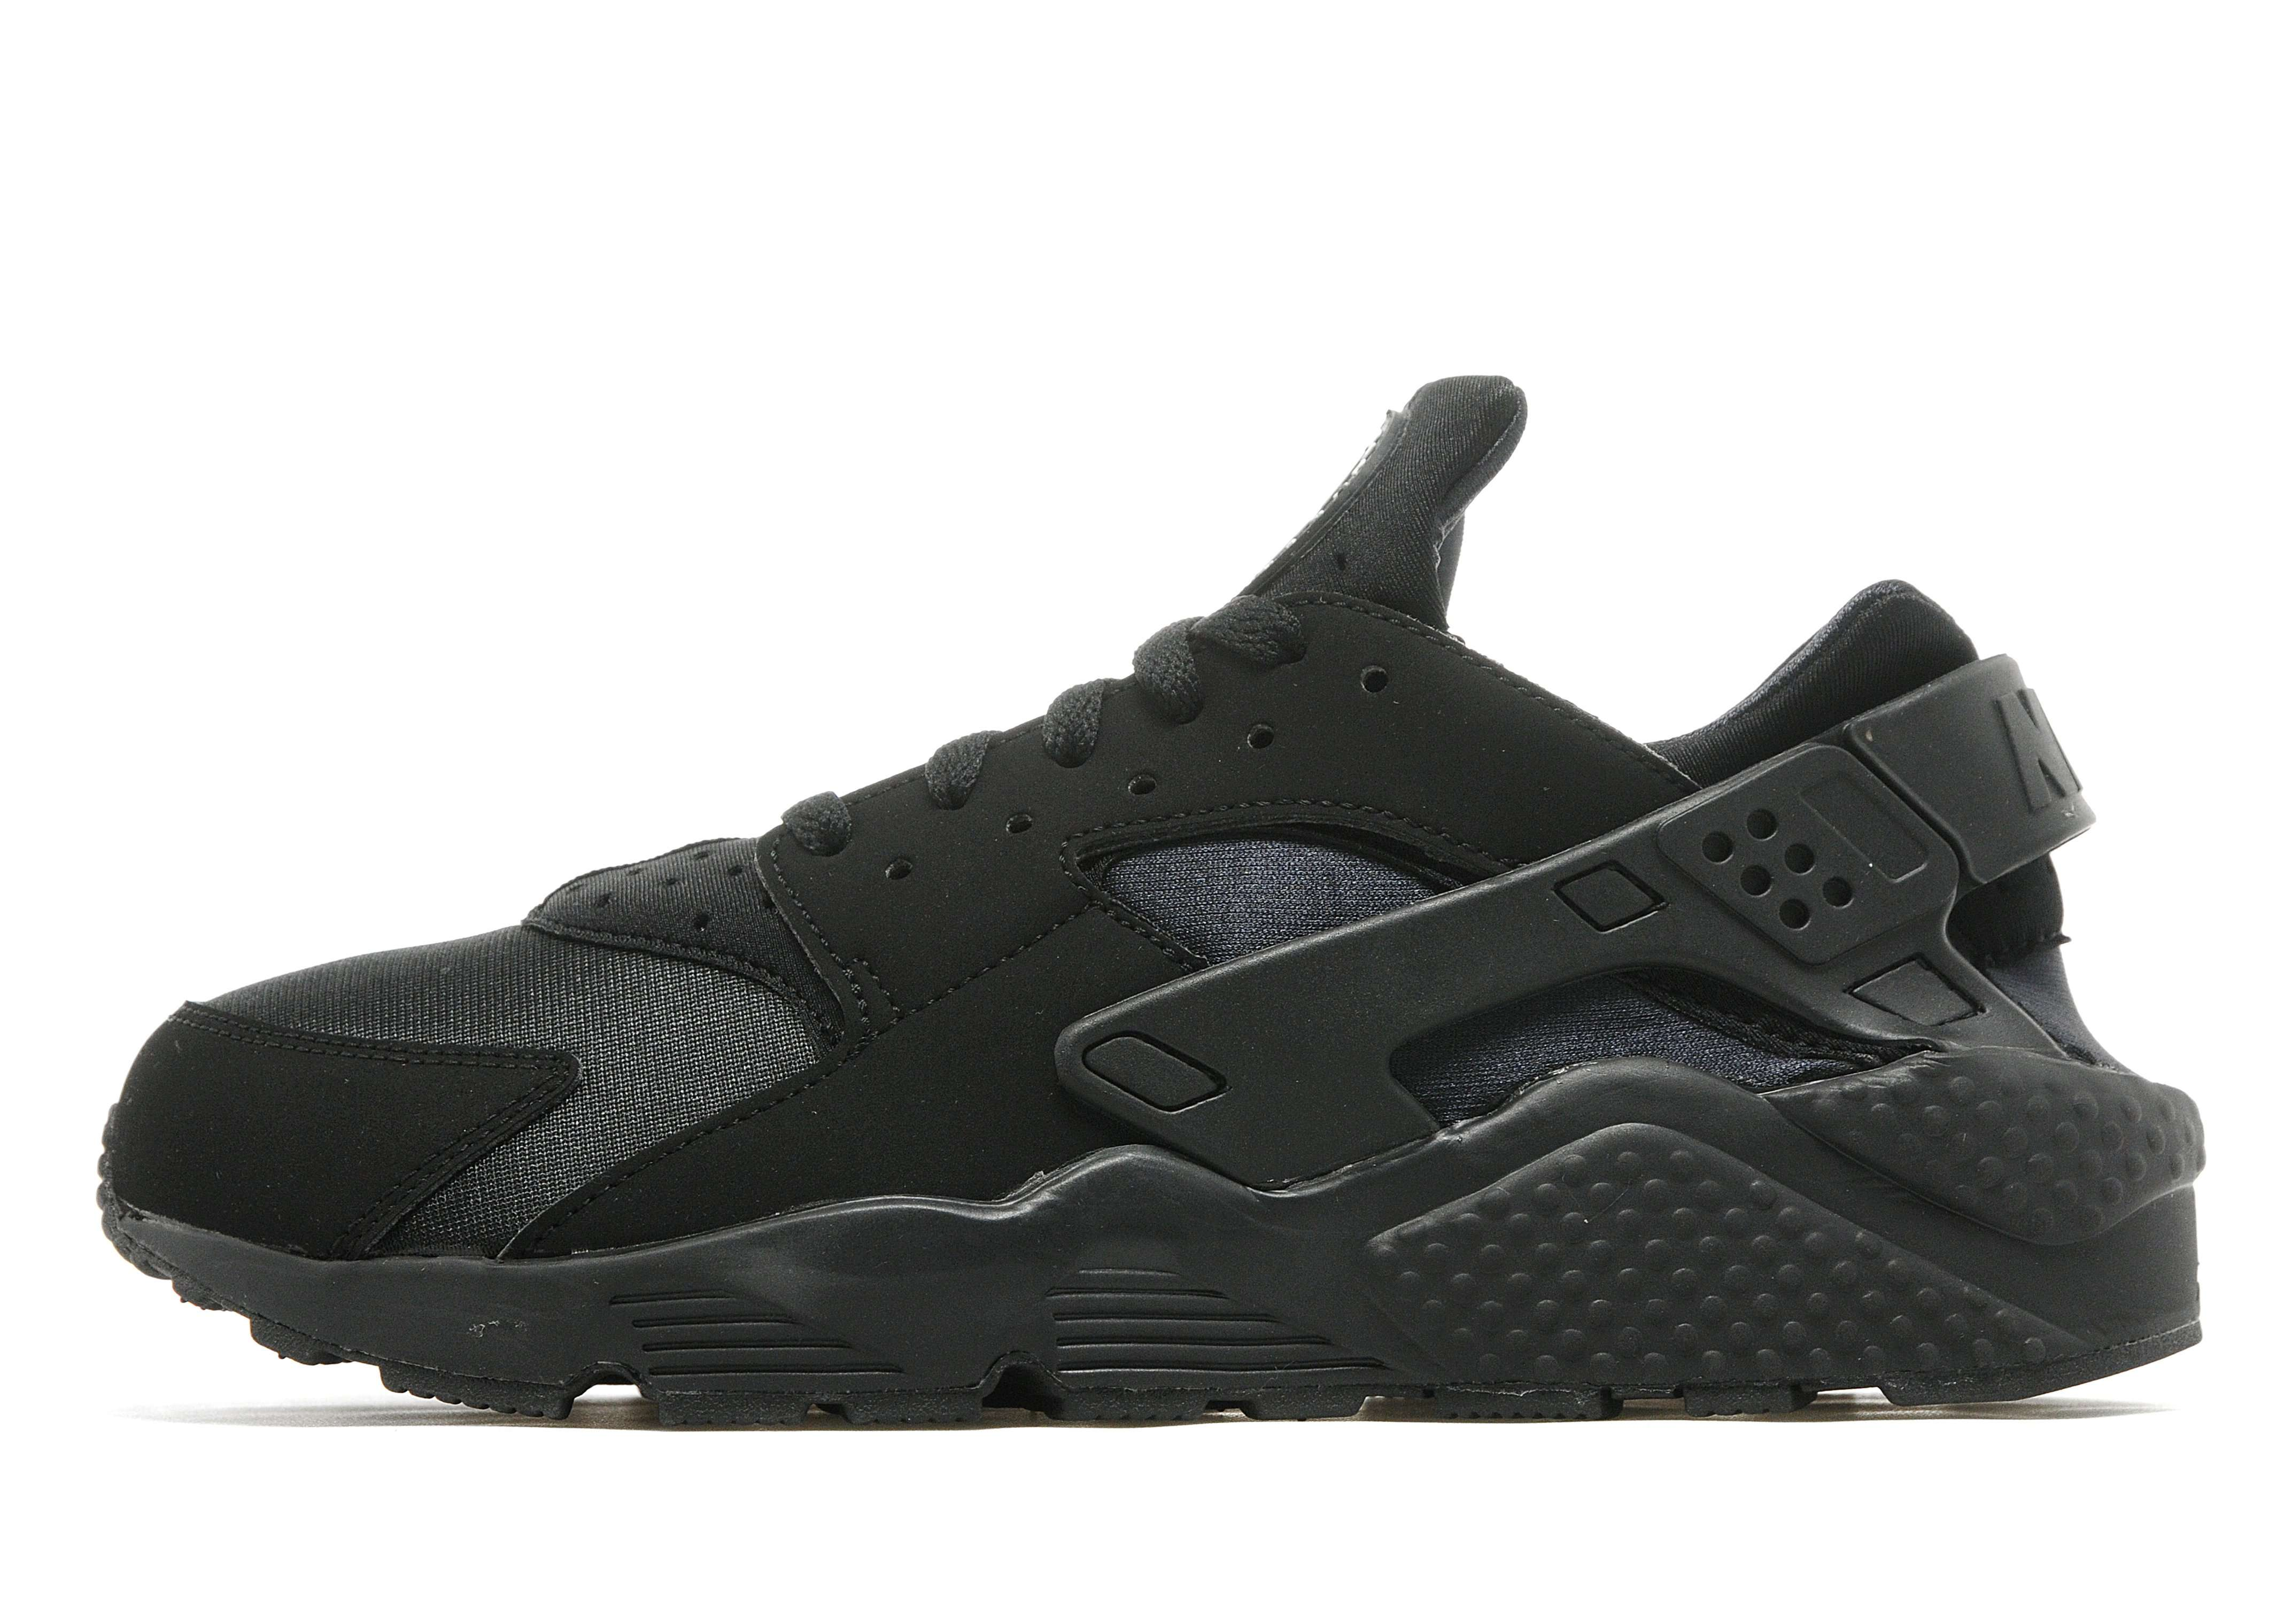 nike air huarache jd sports. Black Bedroom Furniture Sets. Home Design Ideas